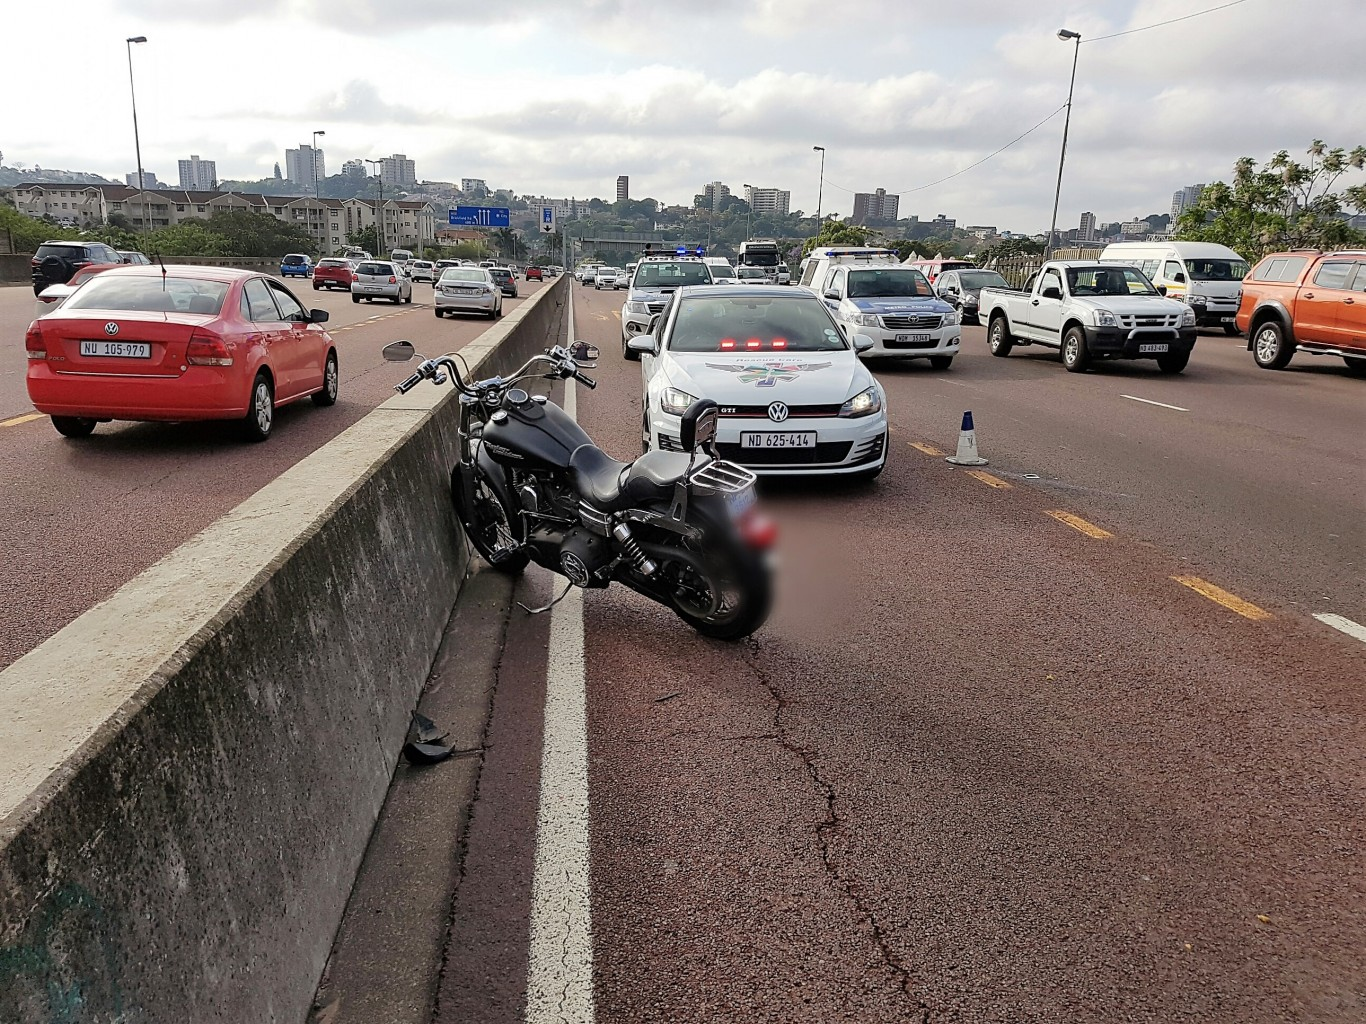 Bikers injured in collision